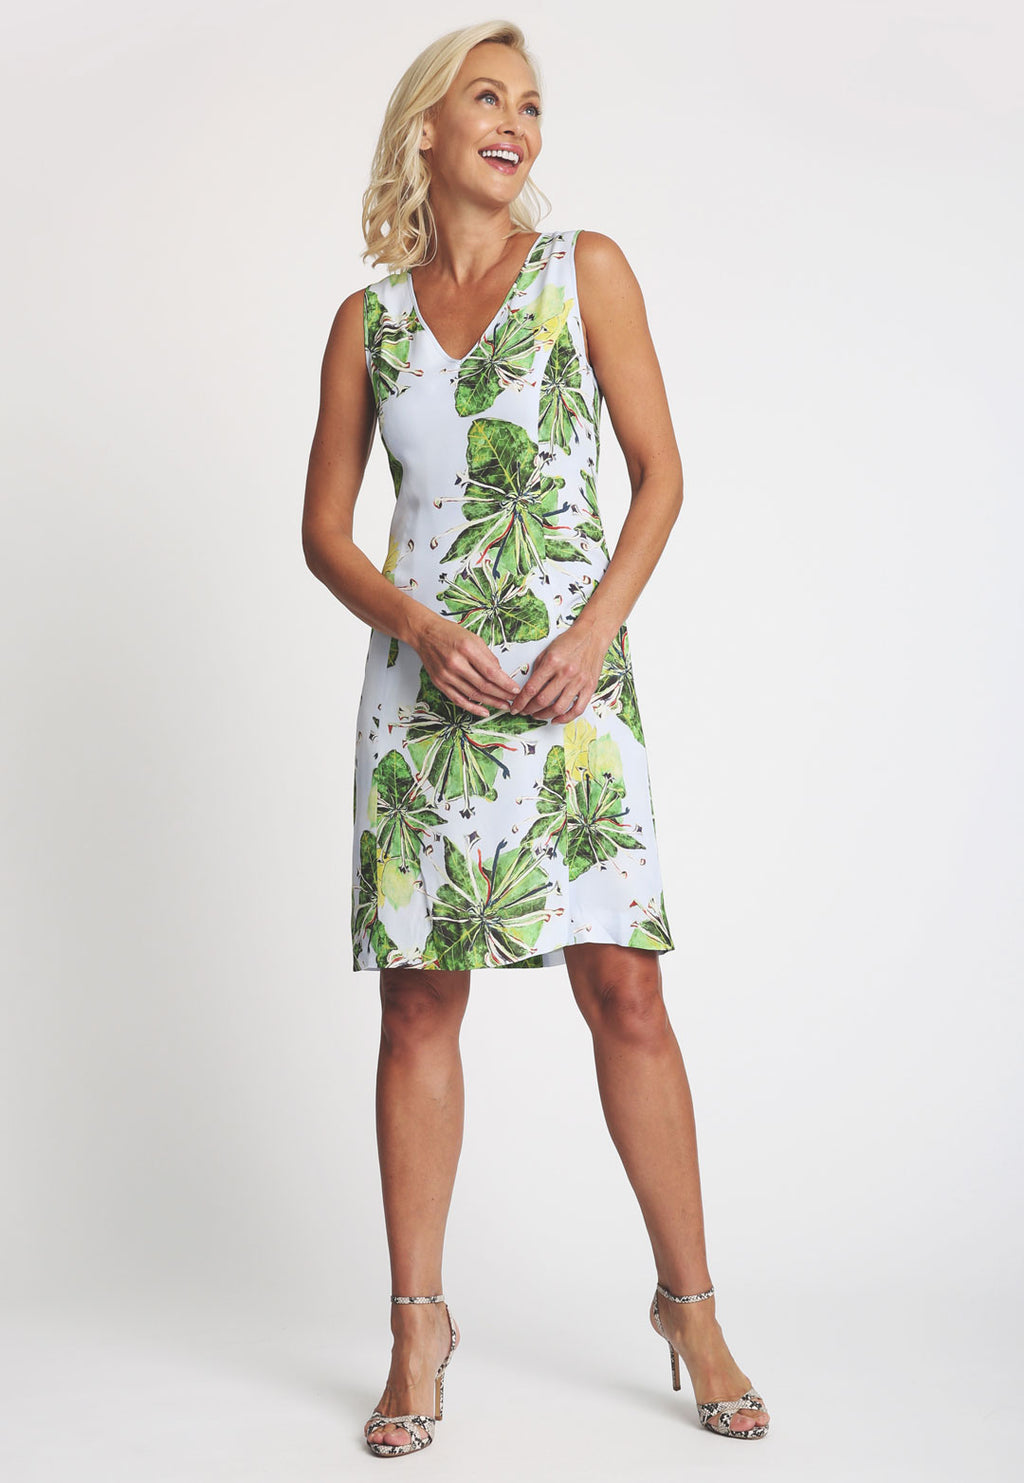 Tippe Dress in Nicotiana front view